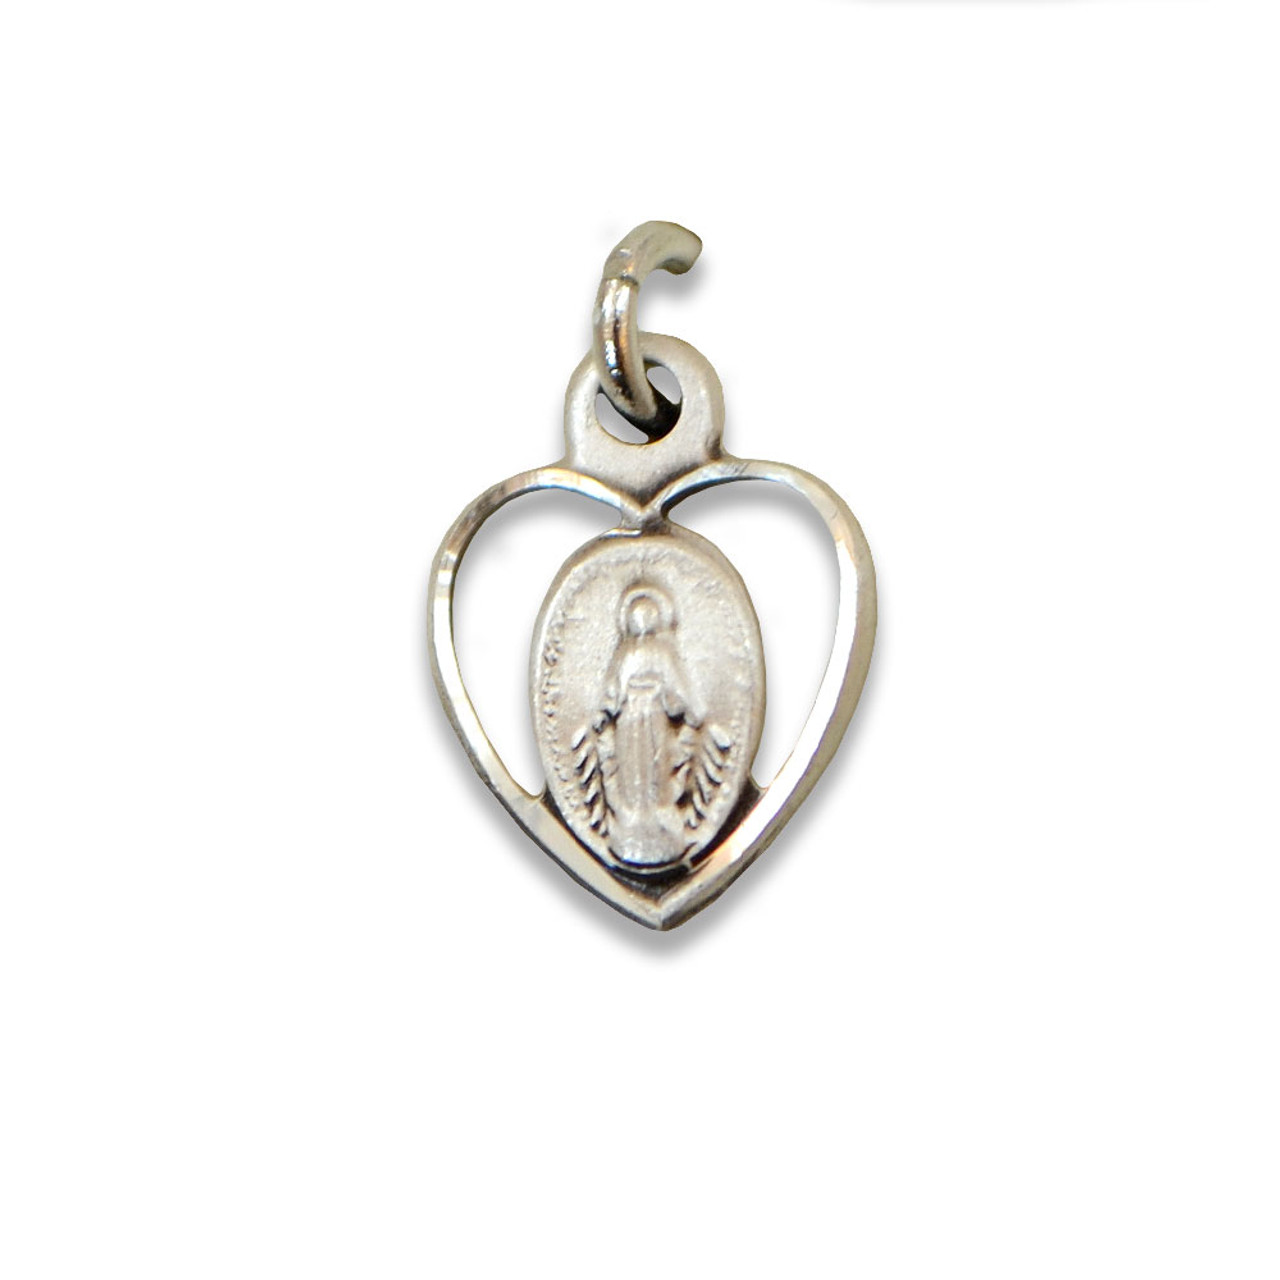 Miraculous Medal in Heart Charm, Sterling Silver